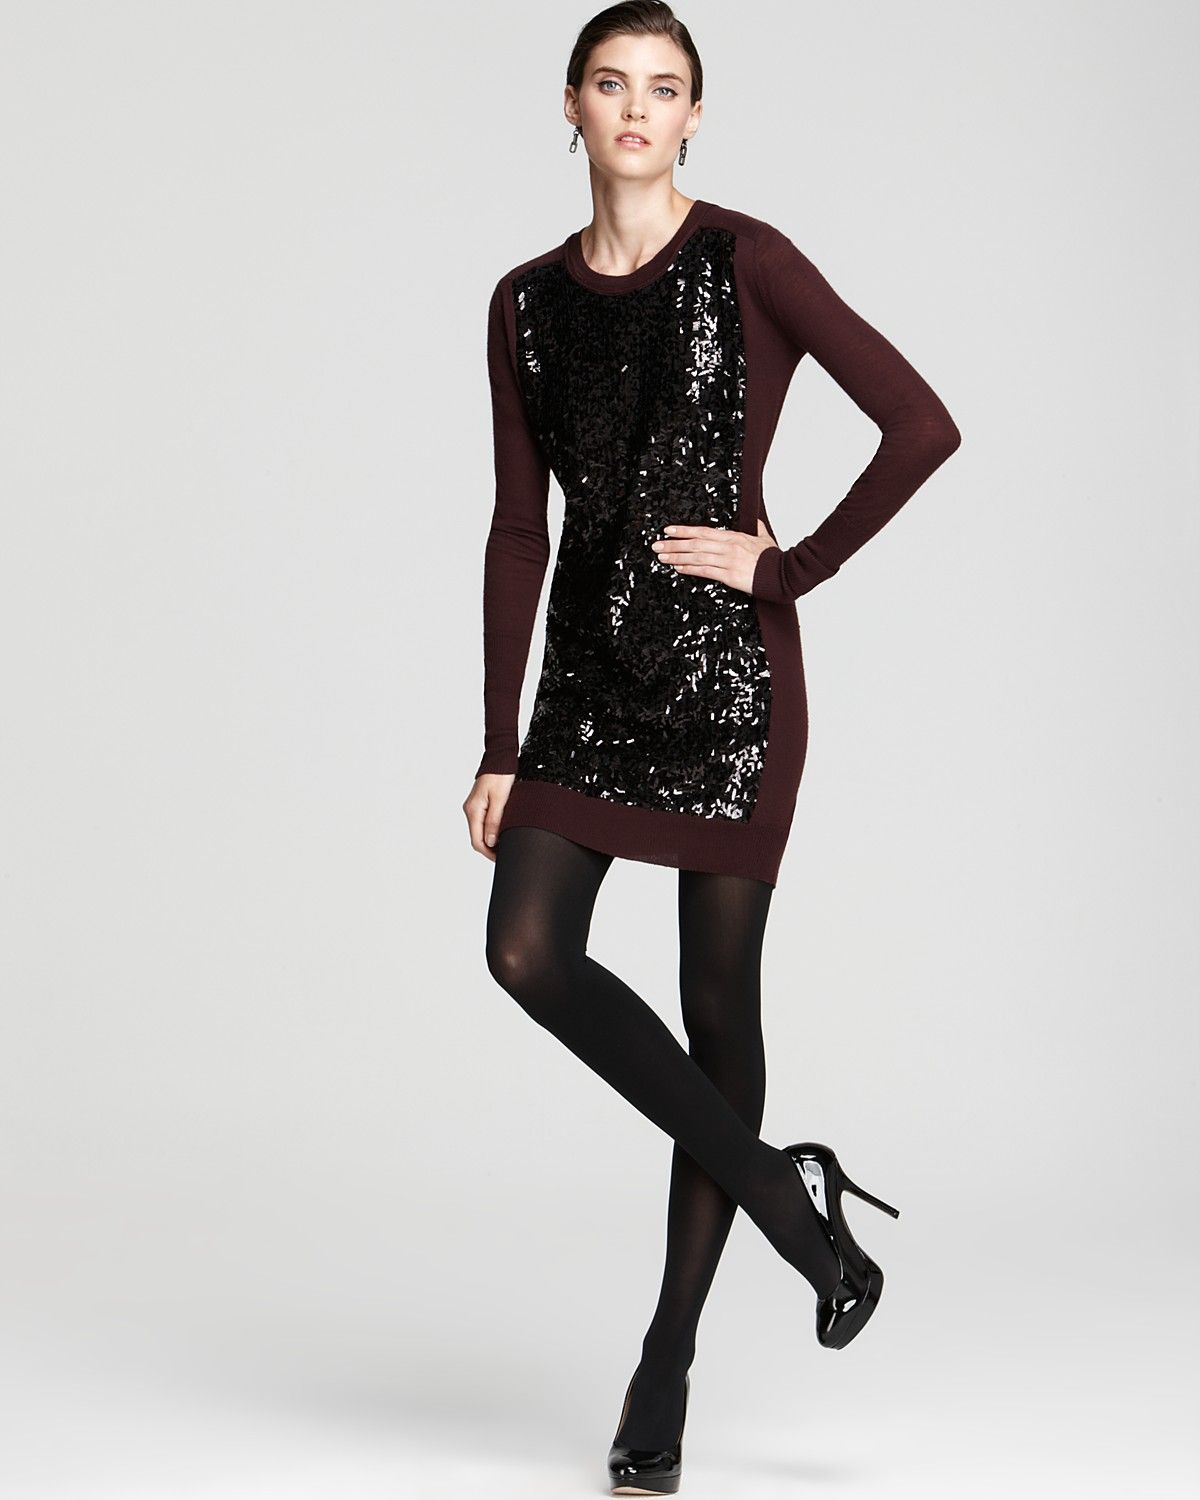 DIANE von FURSTENBERG Sweater Dress - Danette Sequin Embellished ...